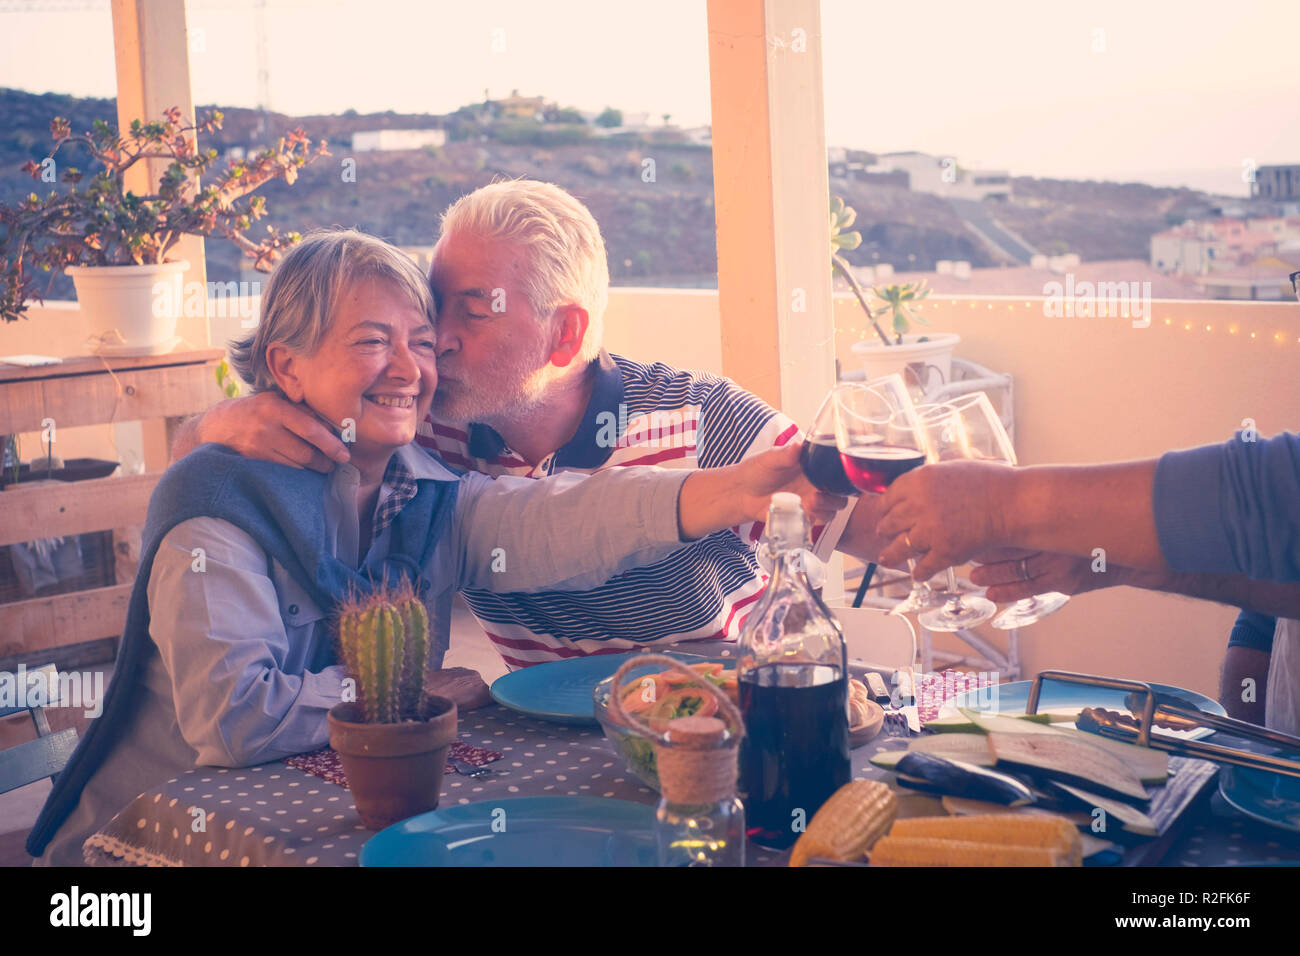 group of aged senior friends adults having dinner and doing party nice time in the rooftop terrace outdoor with wine and food. having fun and kiss  during the sunset with beautiful sun backlight and amazing view of the ocean and other roofs. - Stock Image